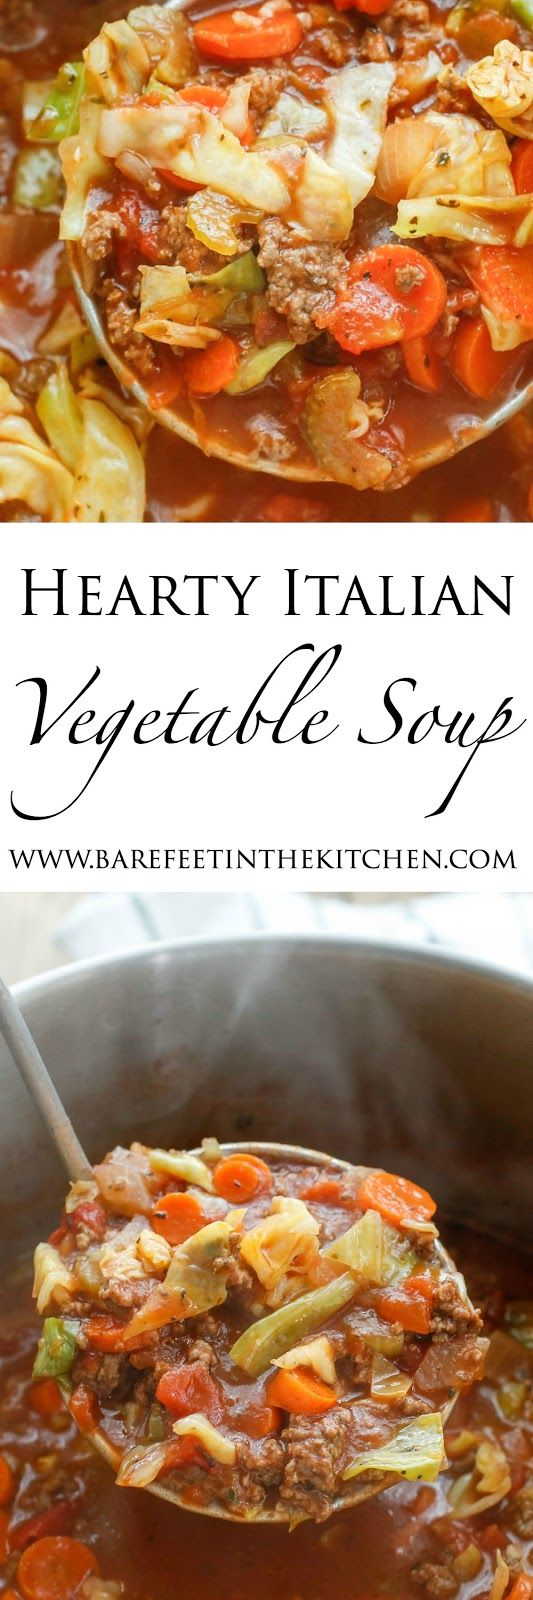 Hearty Italian Vegetable Beef Soup recipe filled with chunks of ground beef, plenty of vegetables, and generous Italian spices, Paleo,  Whole30